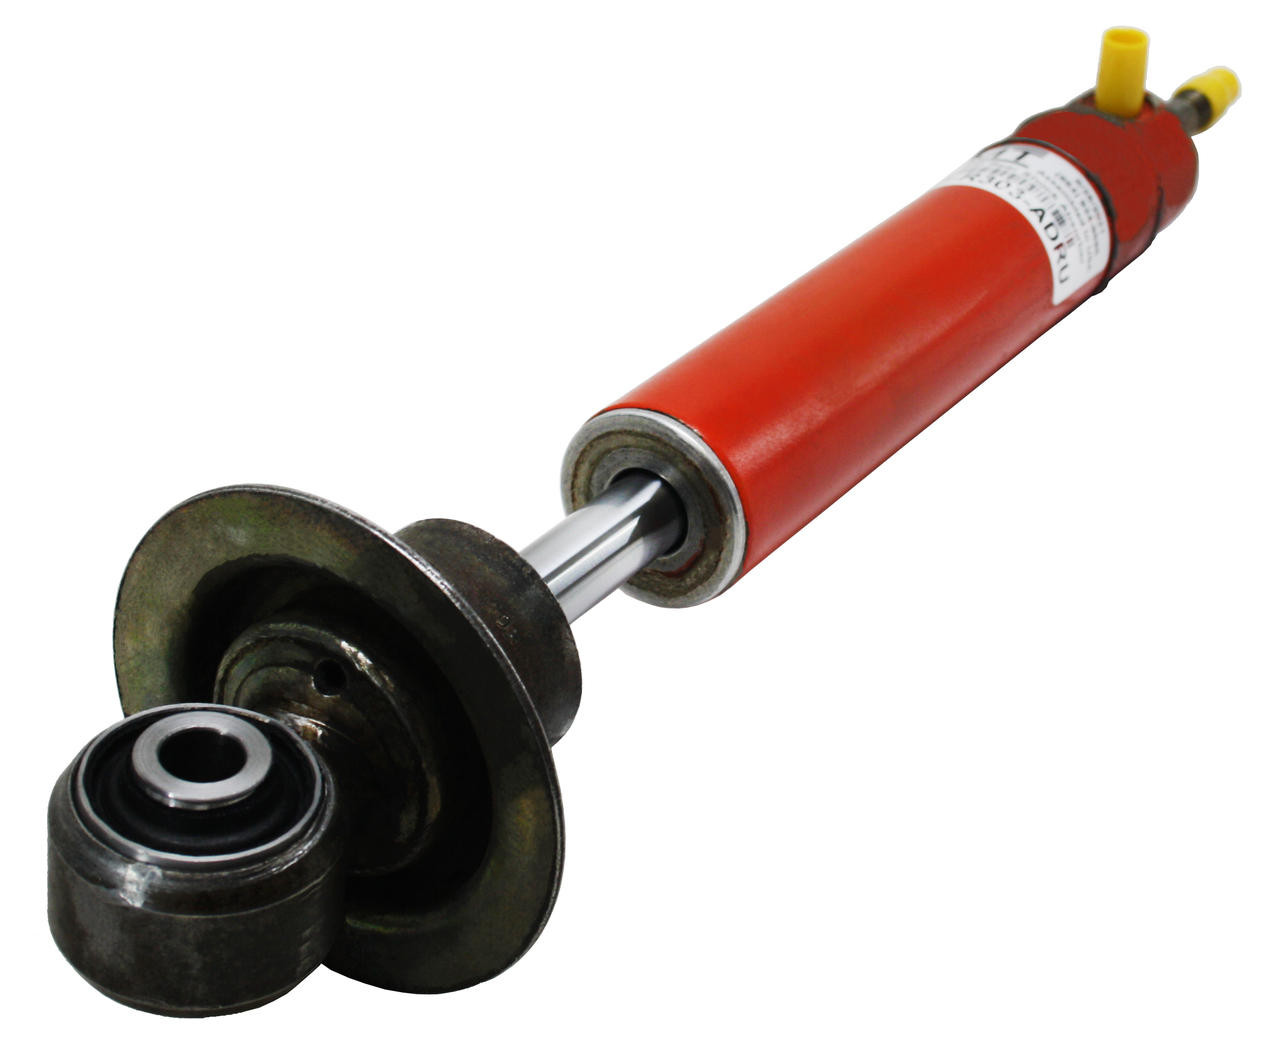 RMT Suspension Products Ferrari 412 1985-1989 OE Rebuilt Replacement Rear Shock Absorber 117722